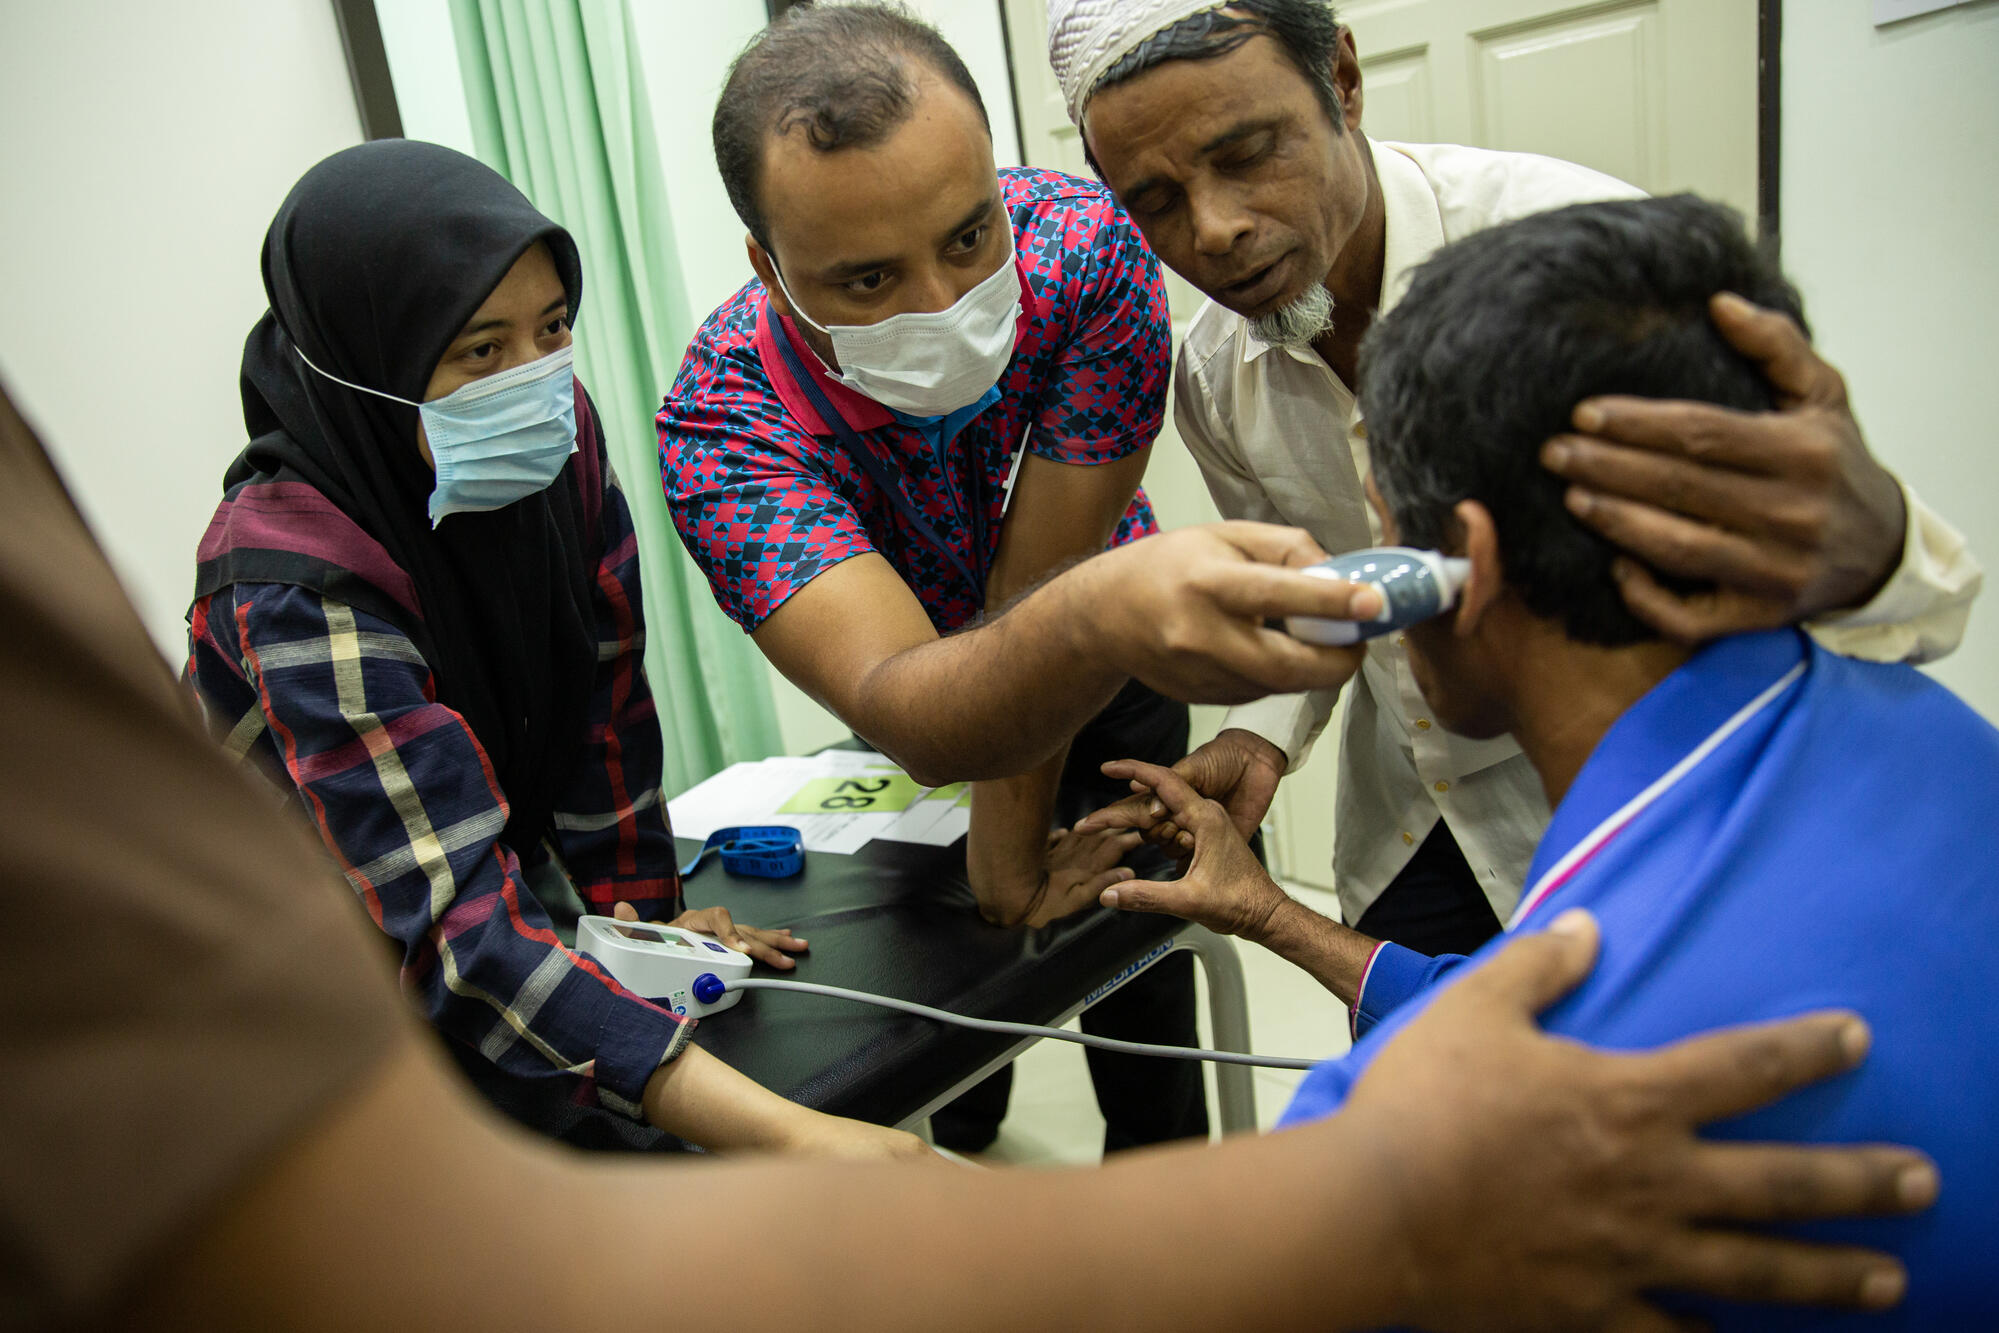 Kairul, a Rohingya refugee is examined by MSF nurses after falling two floors while working at a construction date